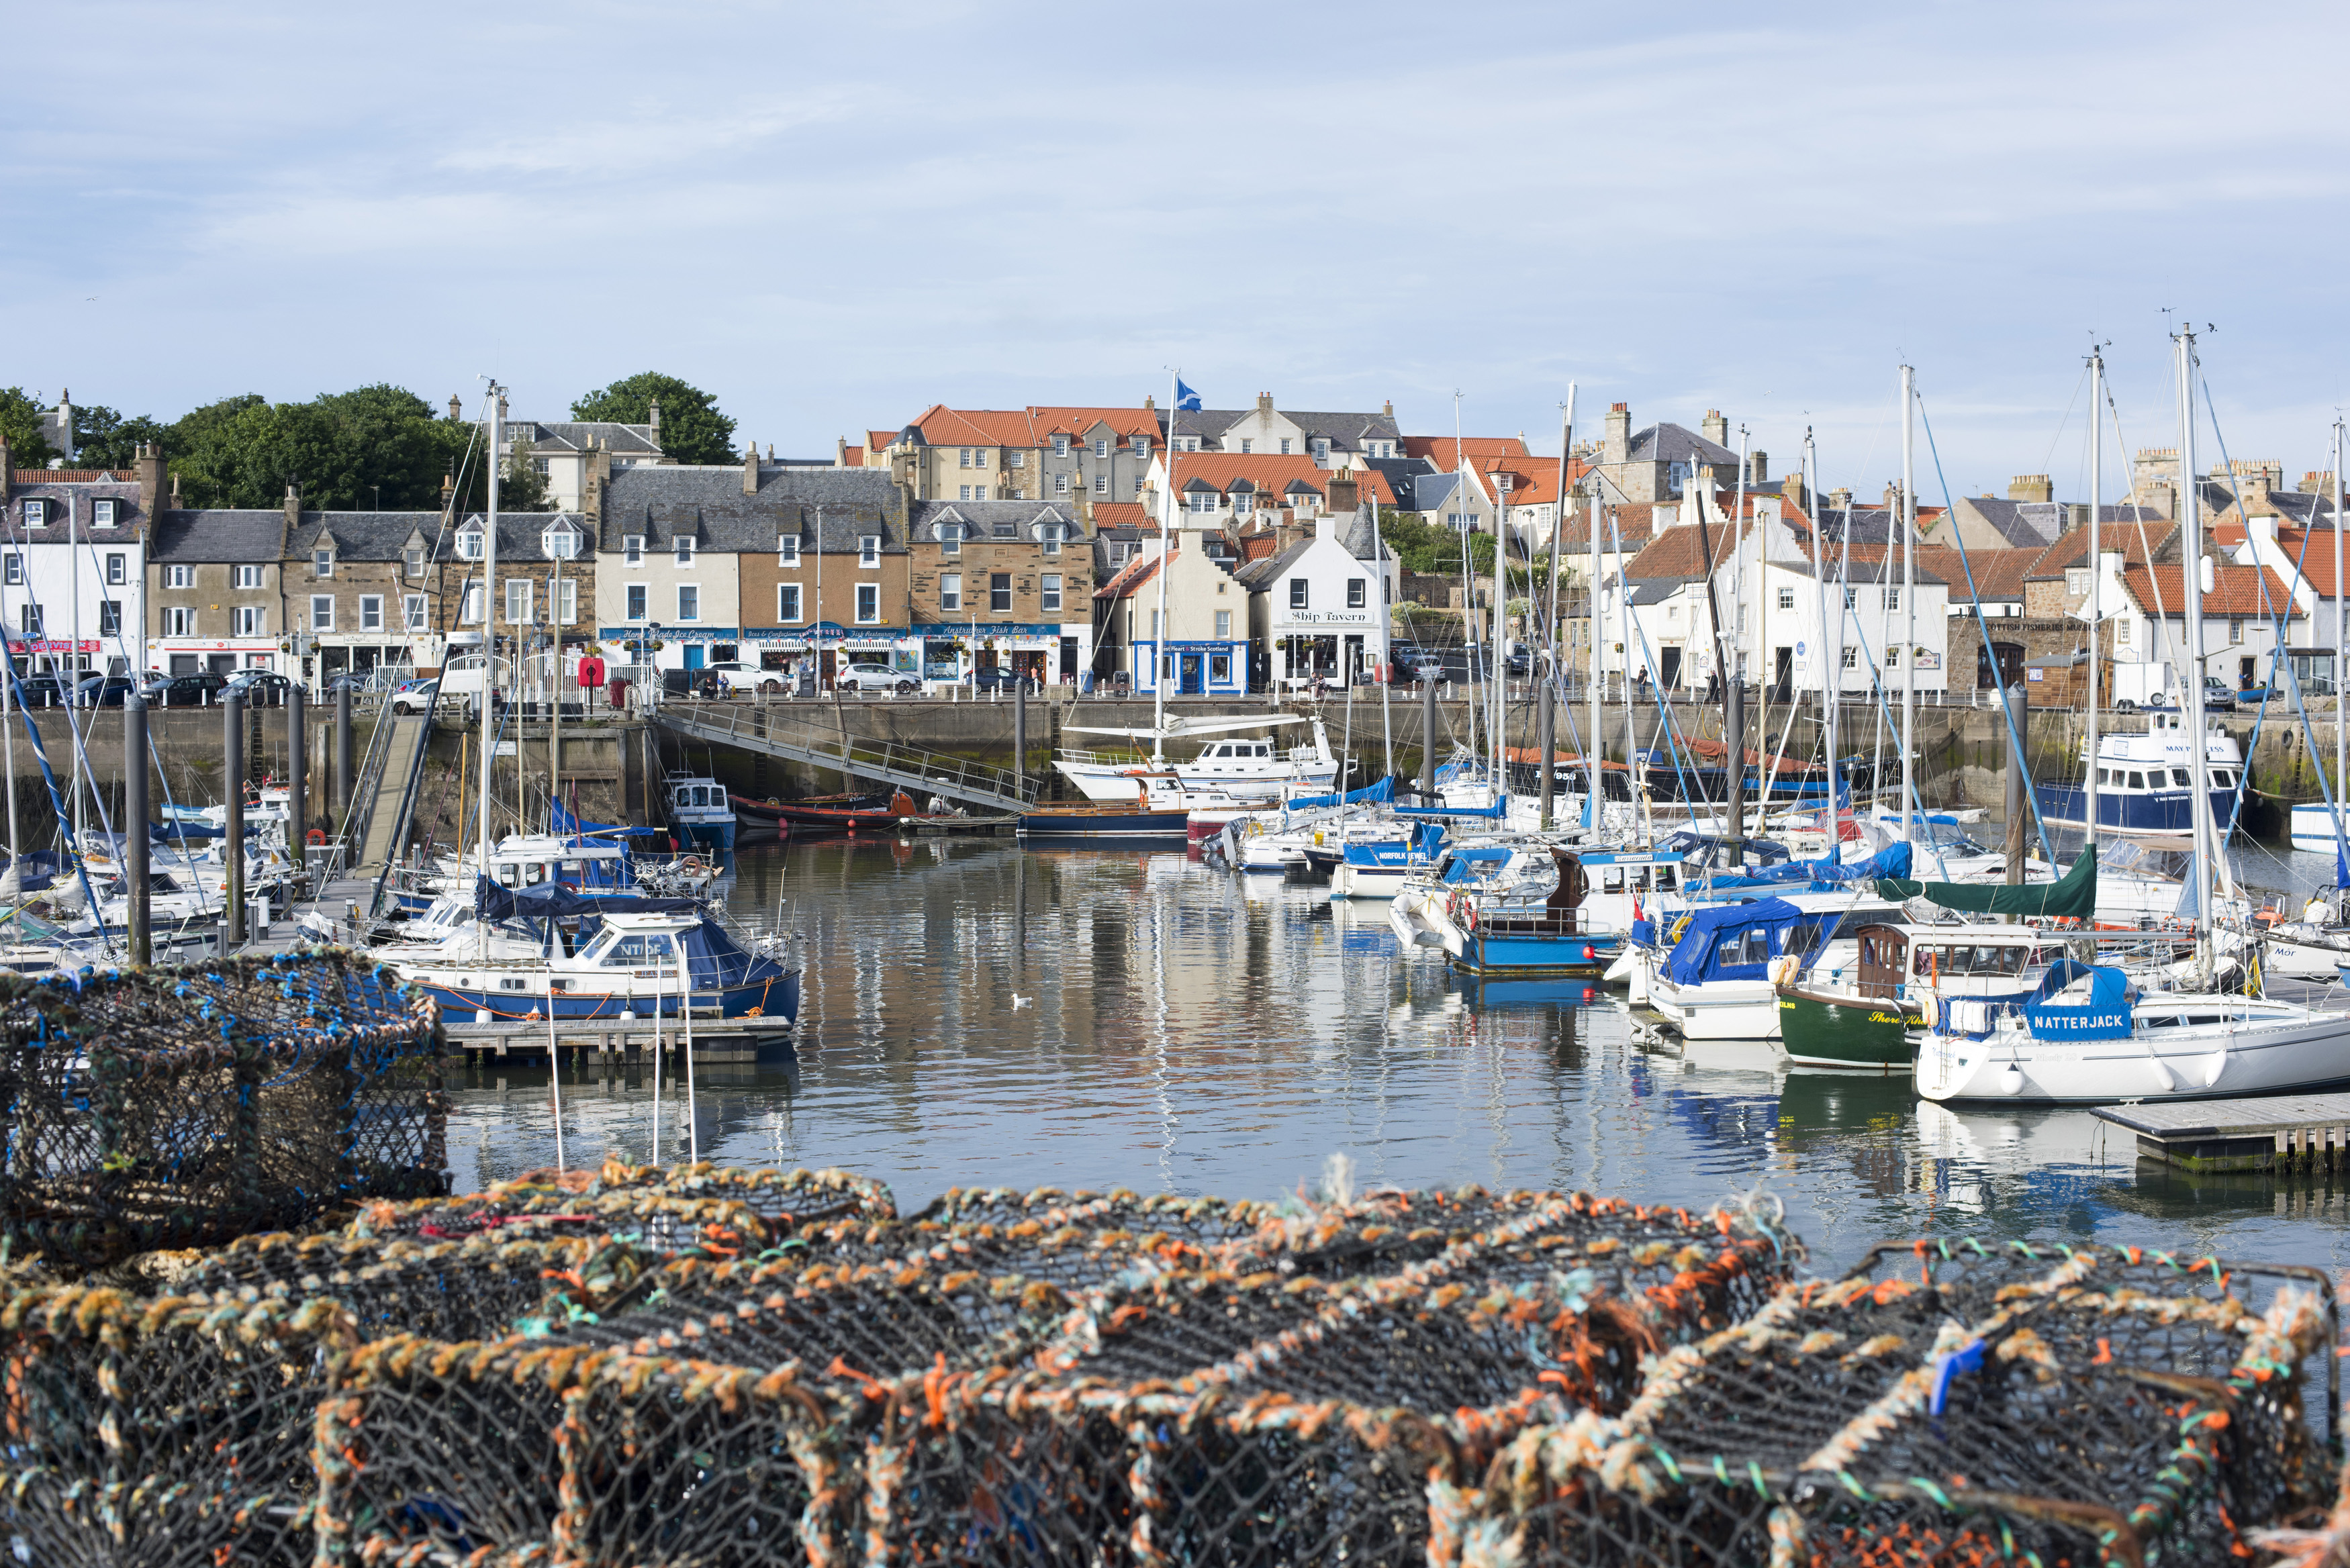 wire fishing traps with fishing and pleasure boats and yachts moored in the harbour overlooked by waterfront houses, Anstruther, Scotland